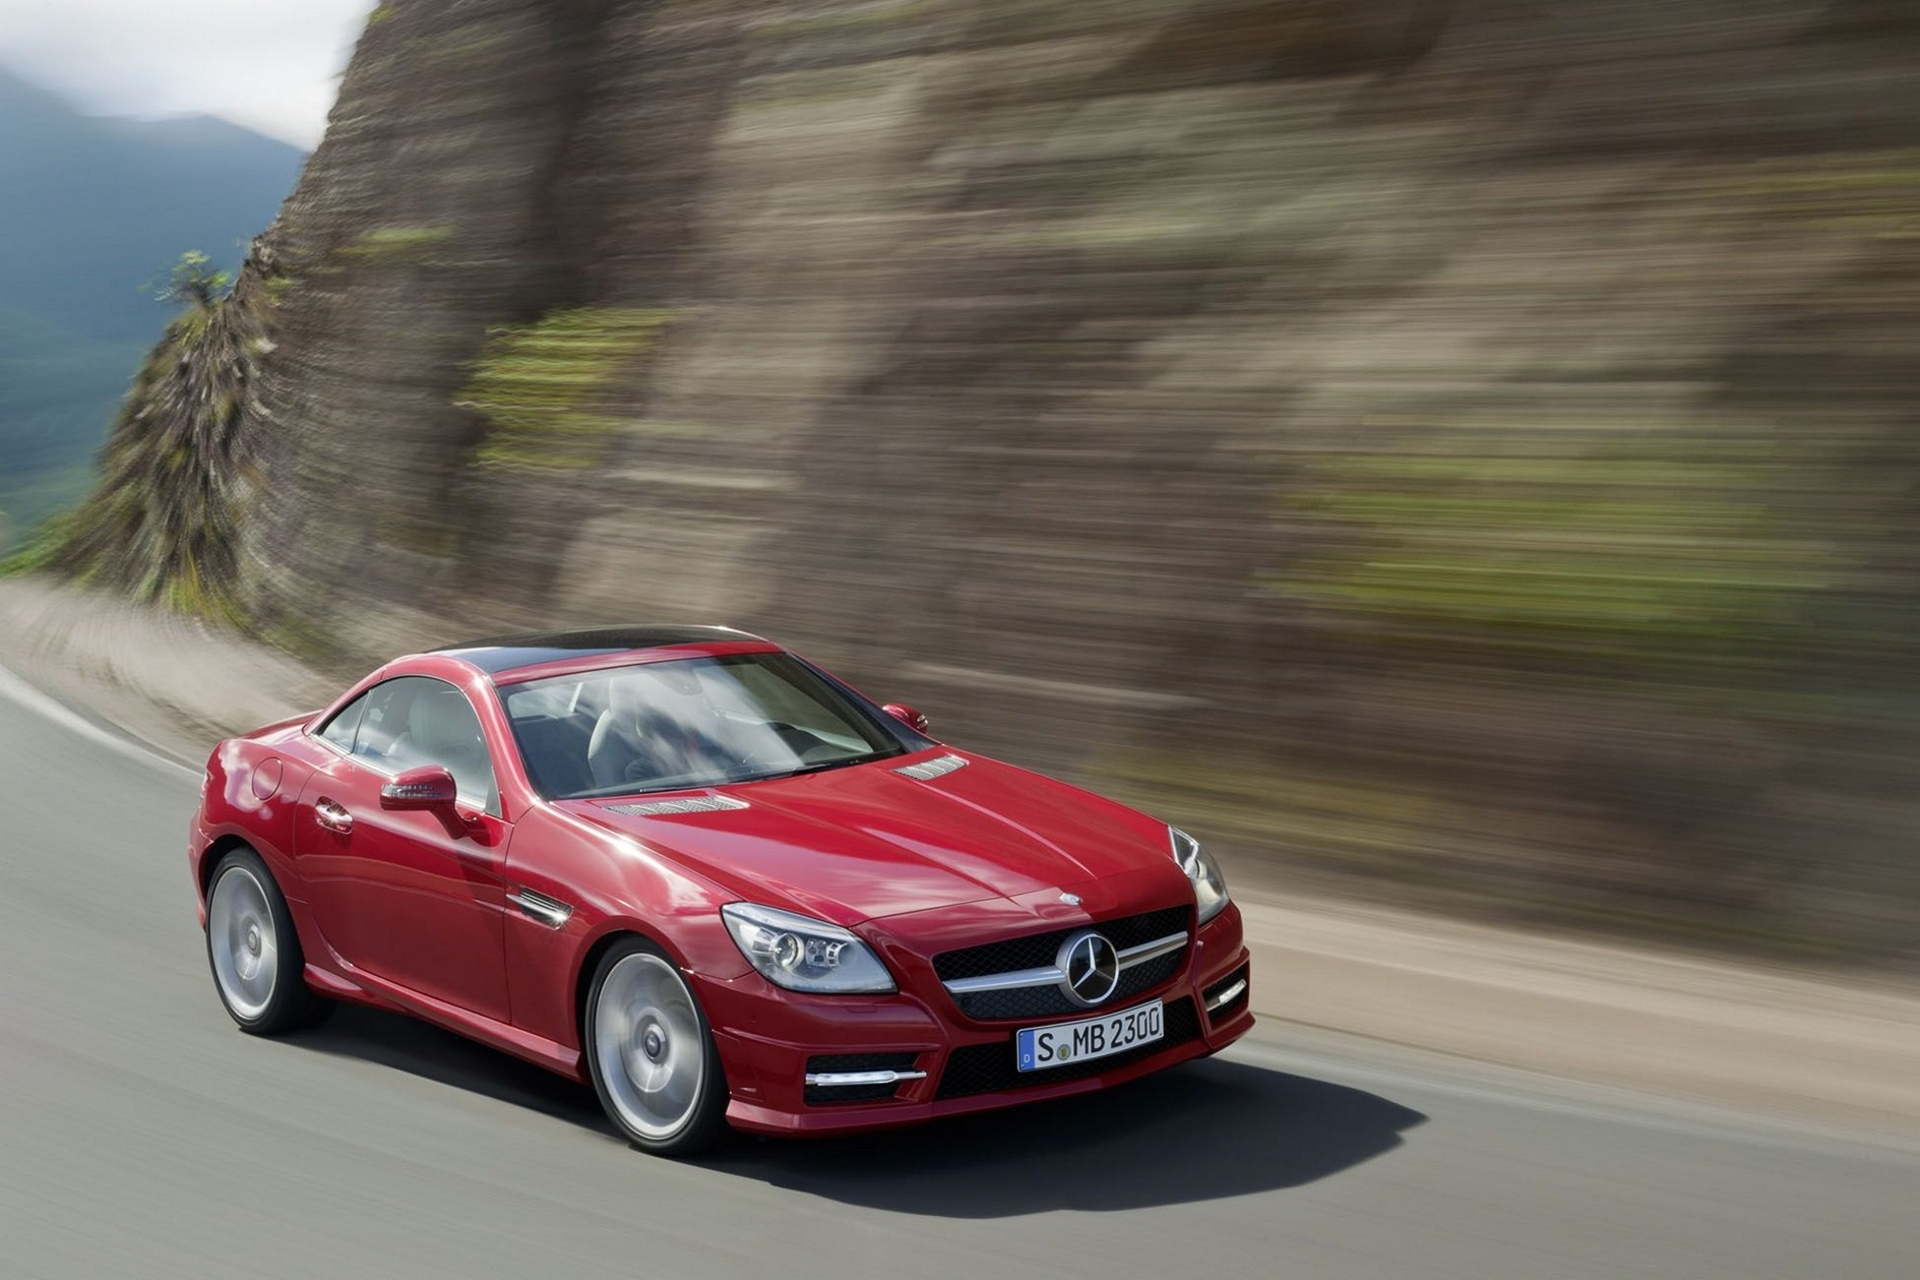 Mercedes-Benz Awards SLK